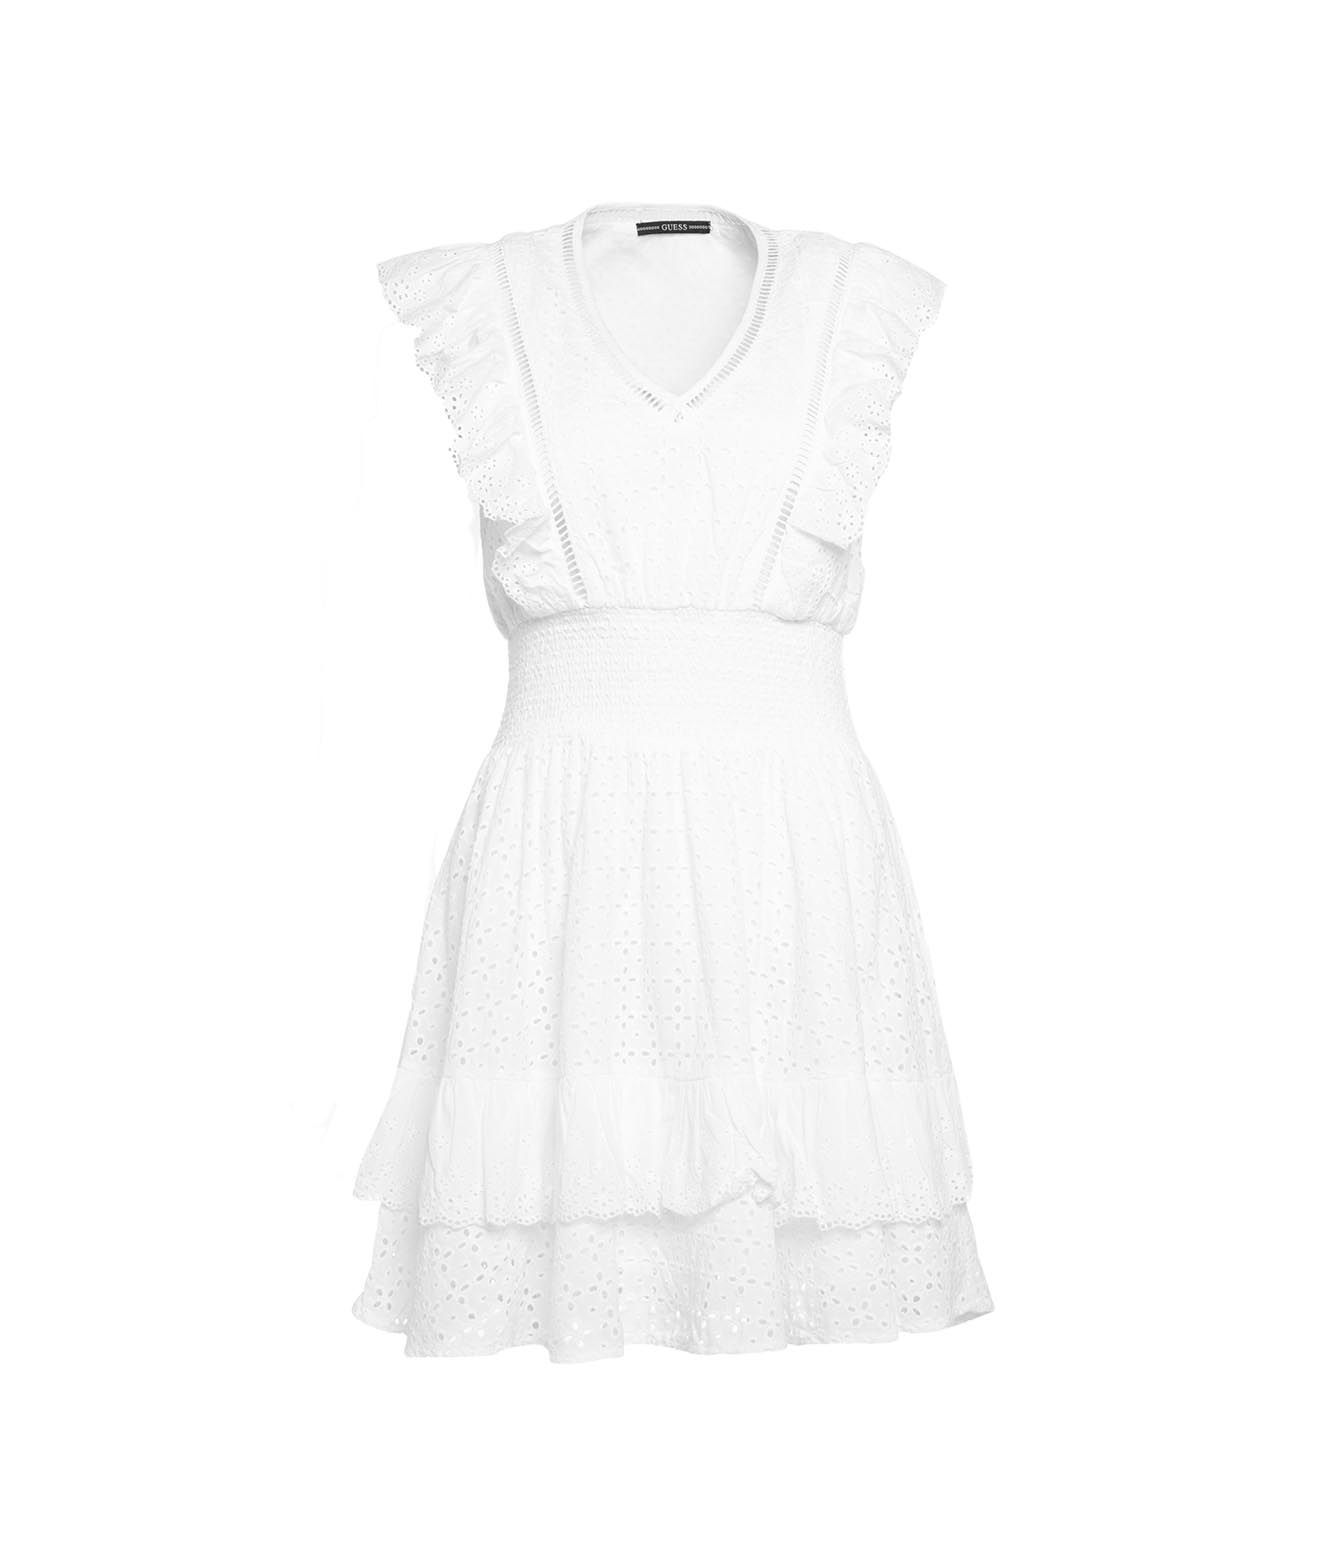 Guess Dresses GUESS WOMEN'S W1GK0HWDVE111TWHT WHITE OTHER MATERIALS DRESS